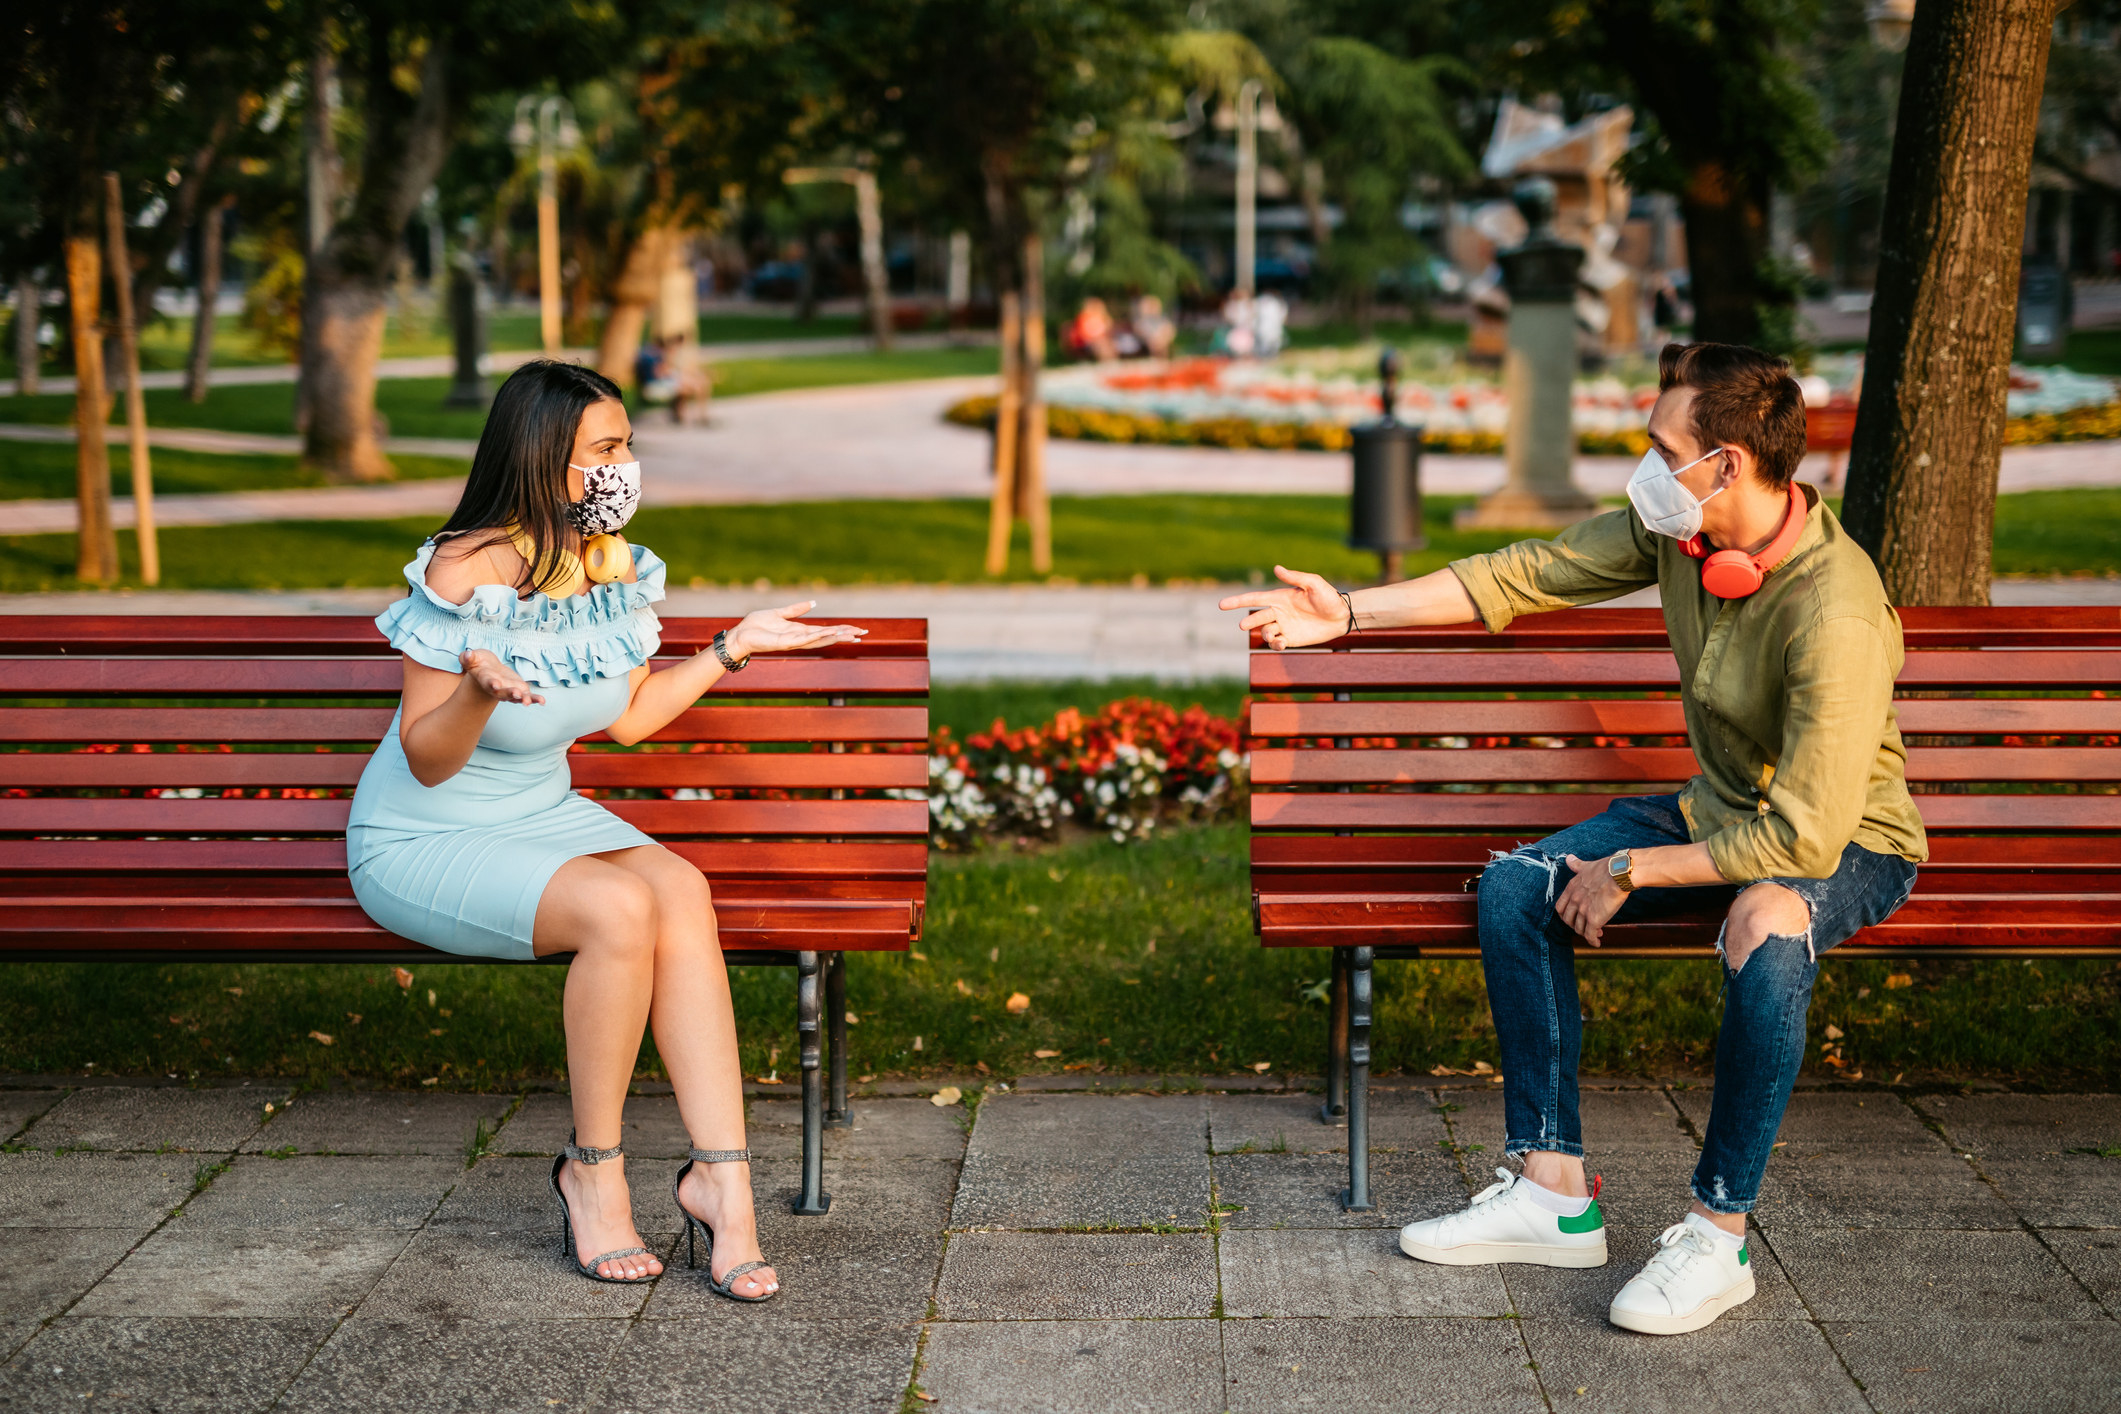 Two people sitting socially distanced on two benches and talking